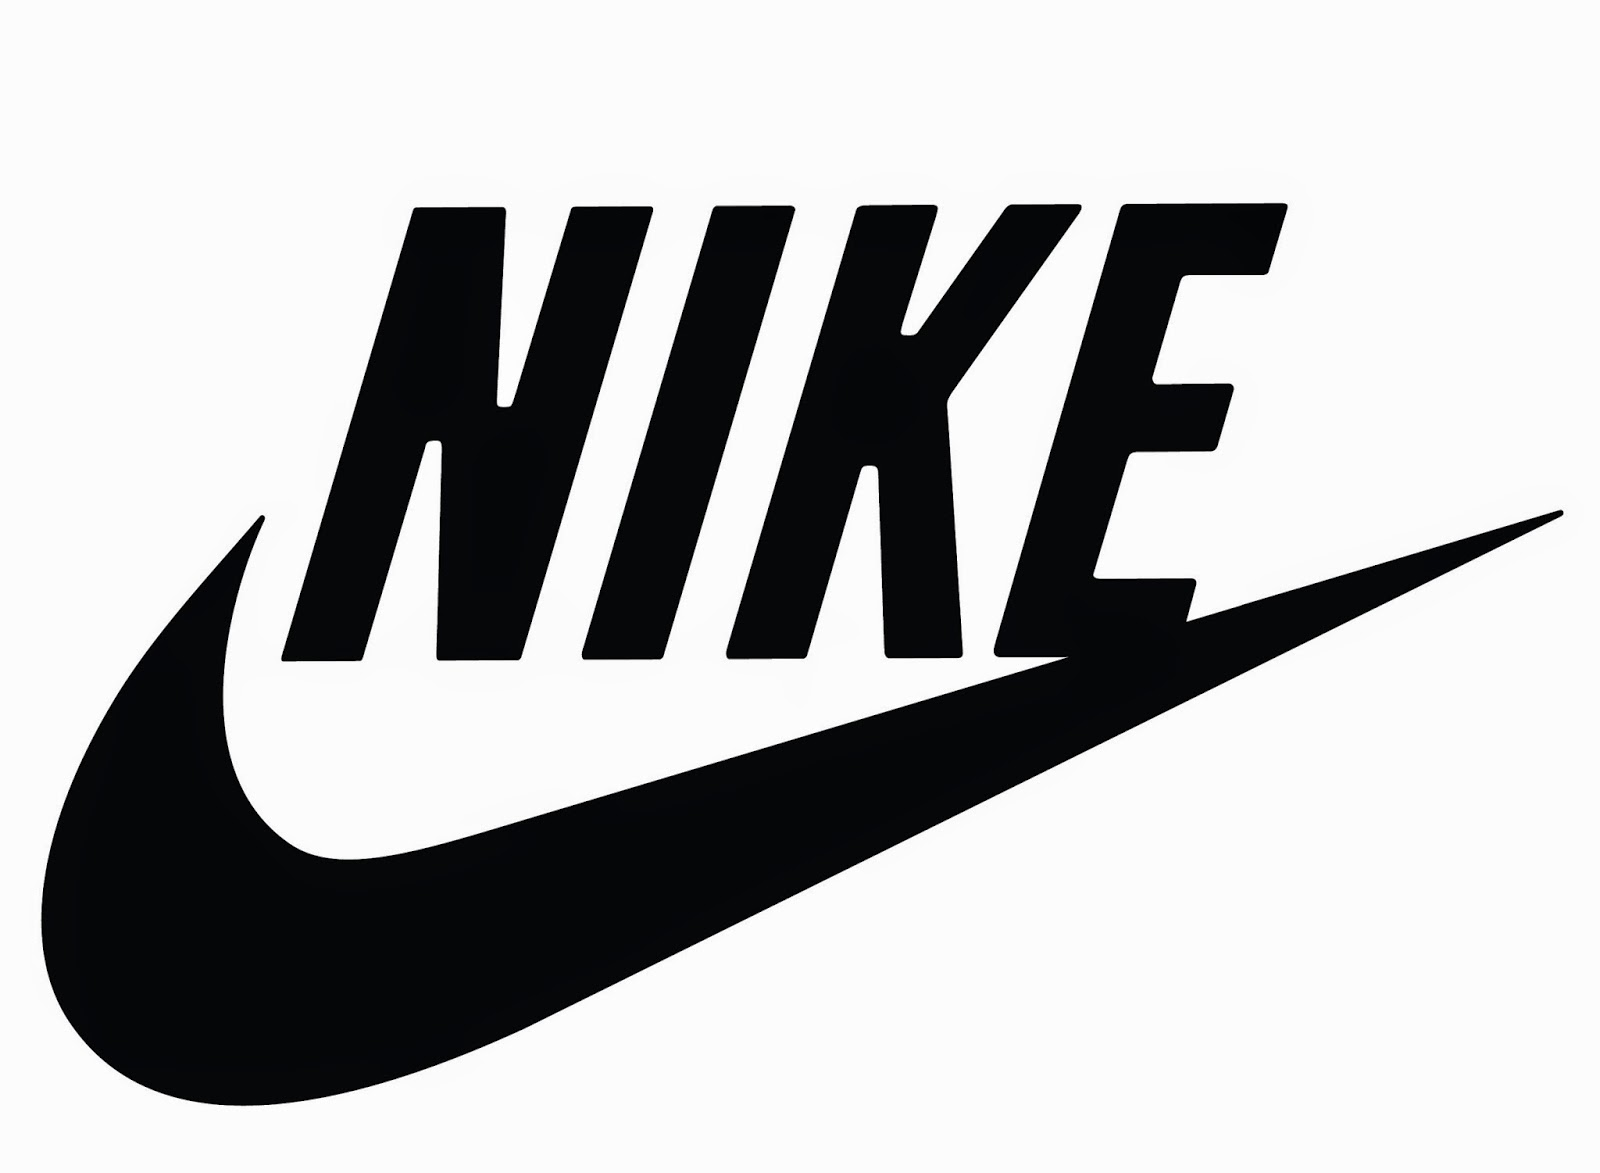 nike logo vector viewing gallery fashion and style tips and body rh fashionsfun blogspot com nike vector logo eps nike vector logo download